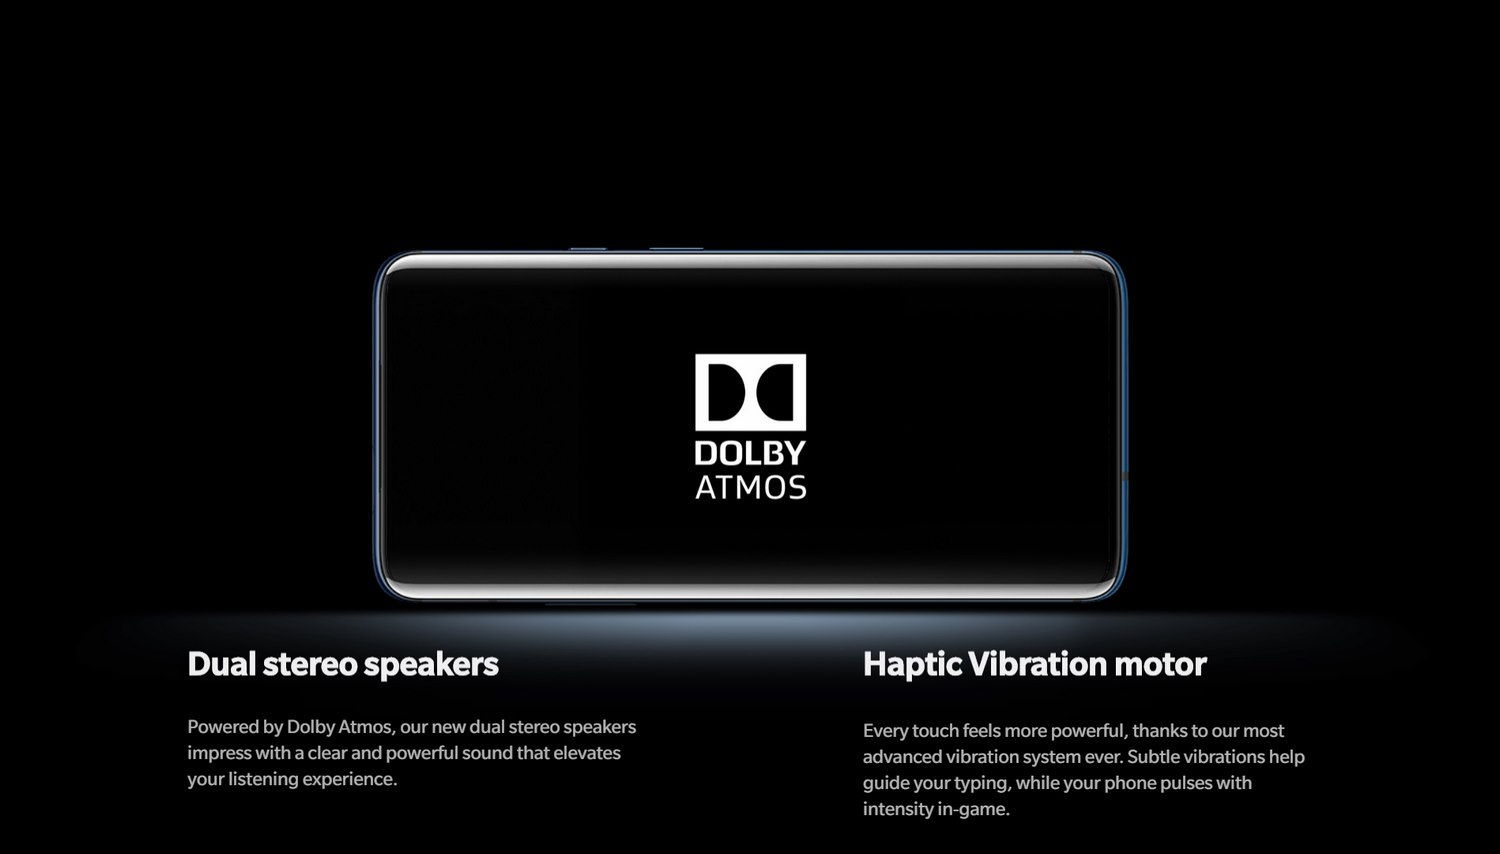 ONEPLUS 7 PRO BANNER - DOLBY ATMOS